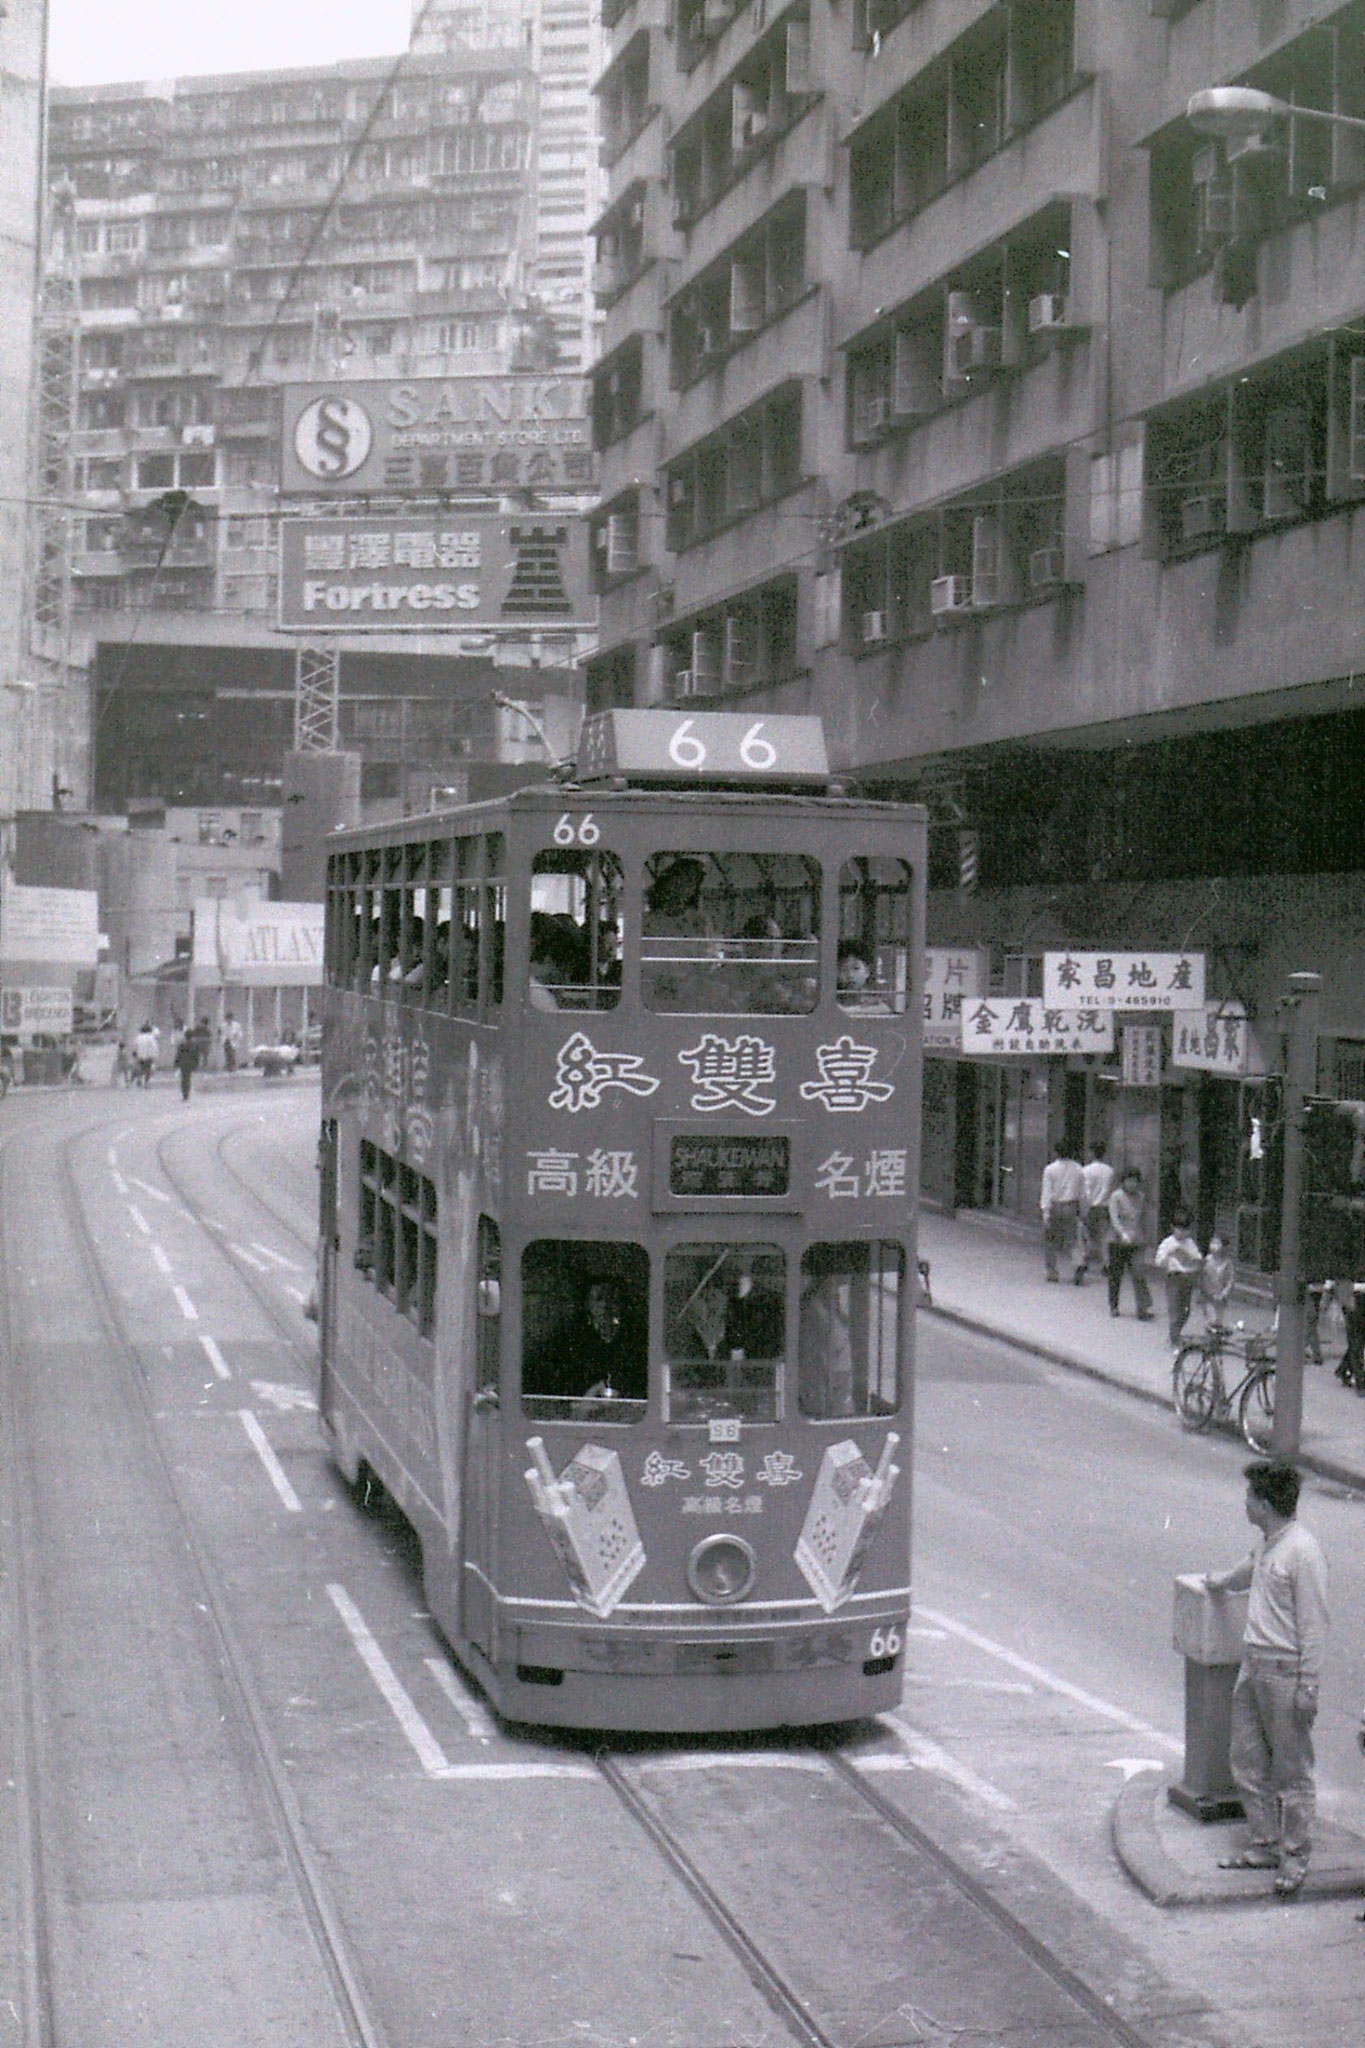 1/4/1989: Hong Kong: from tram travelling west on Hong Kong island